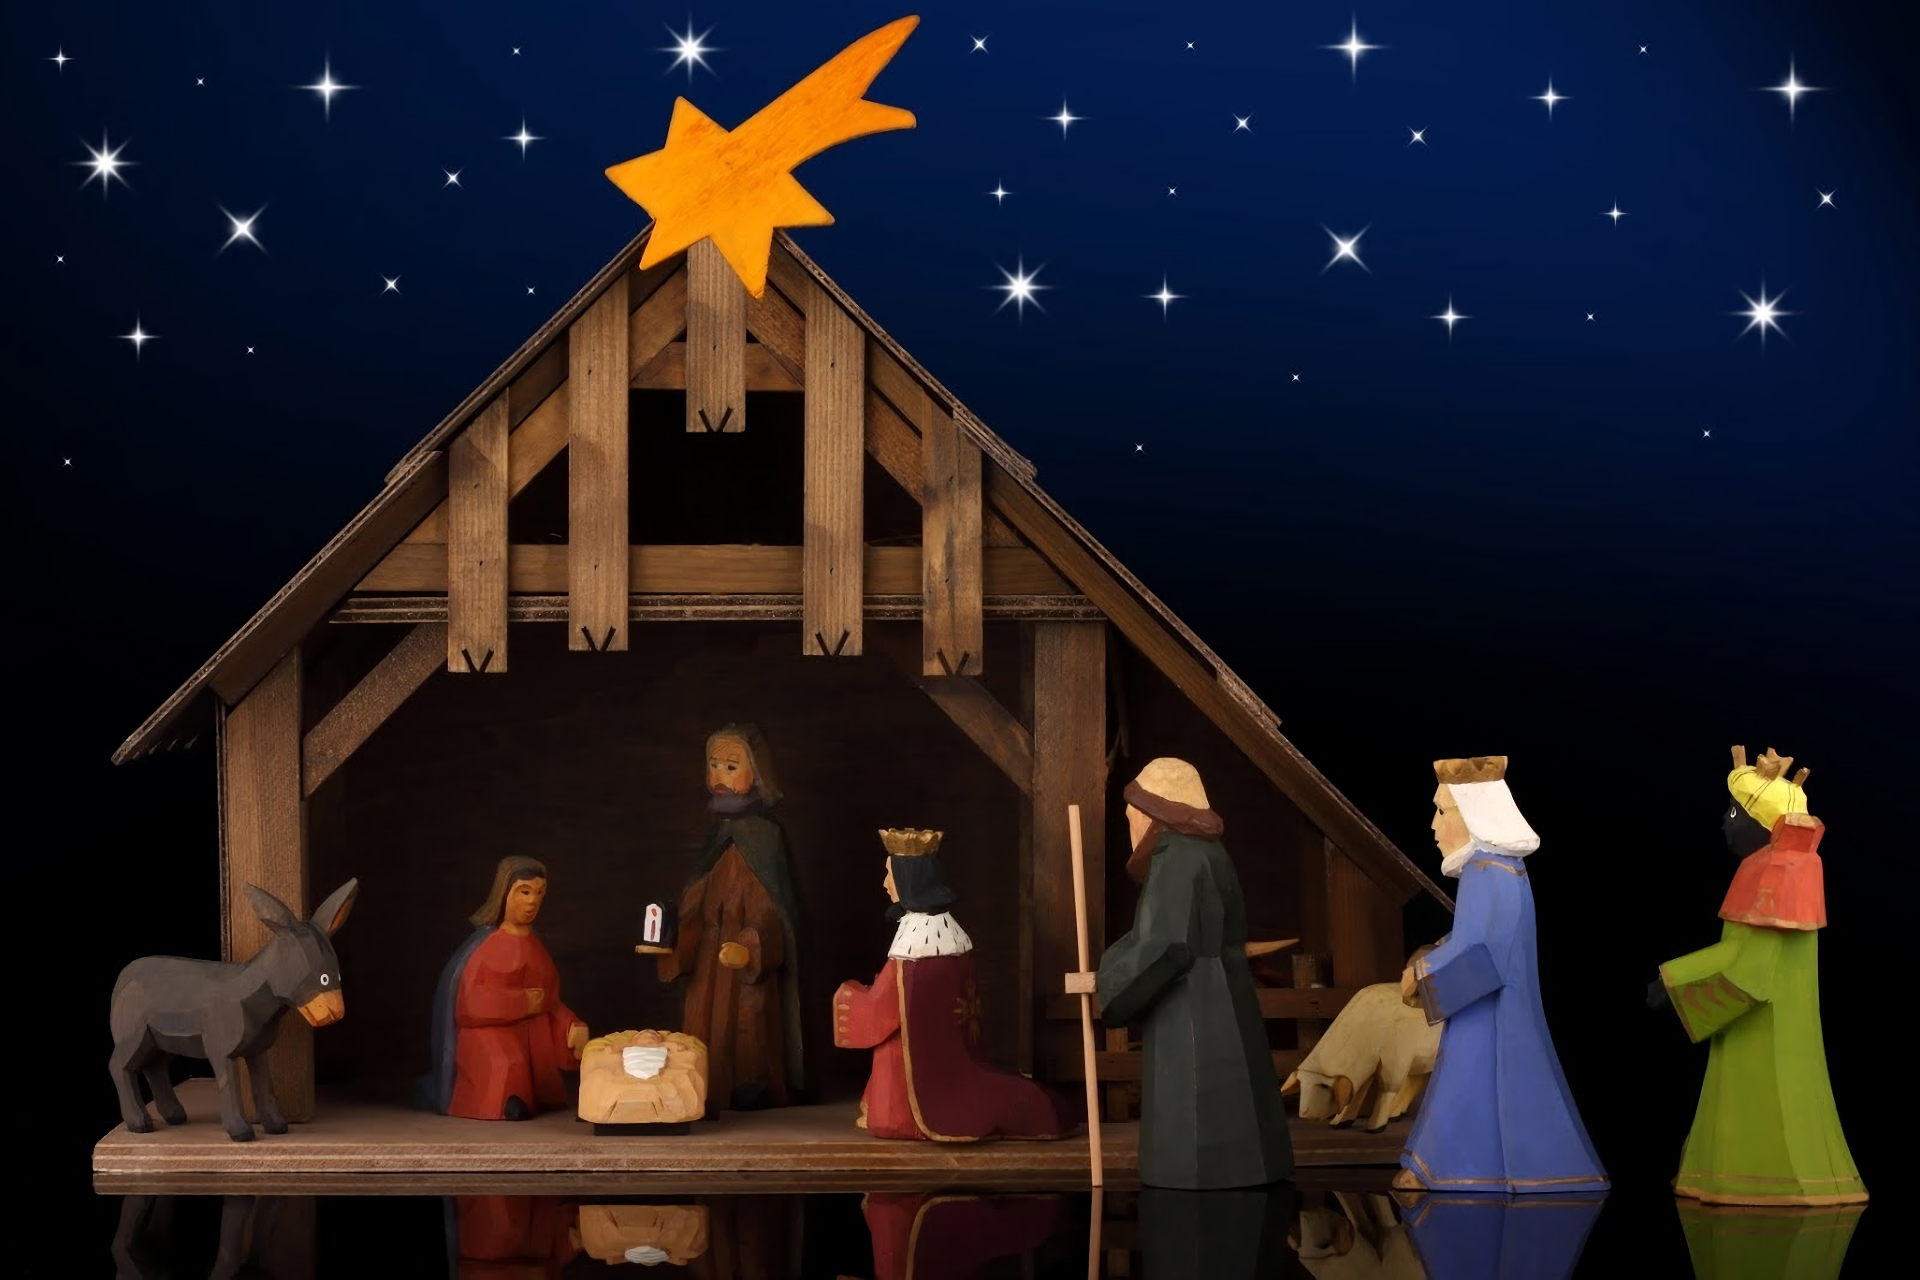 Christmas Jesus Wallpaper.28 Mary Mother Of Jesus Hd Wallpapers Background Images